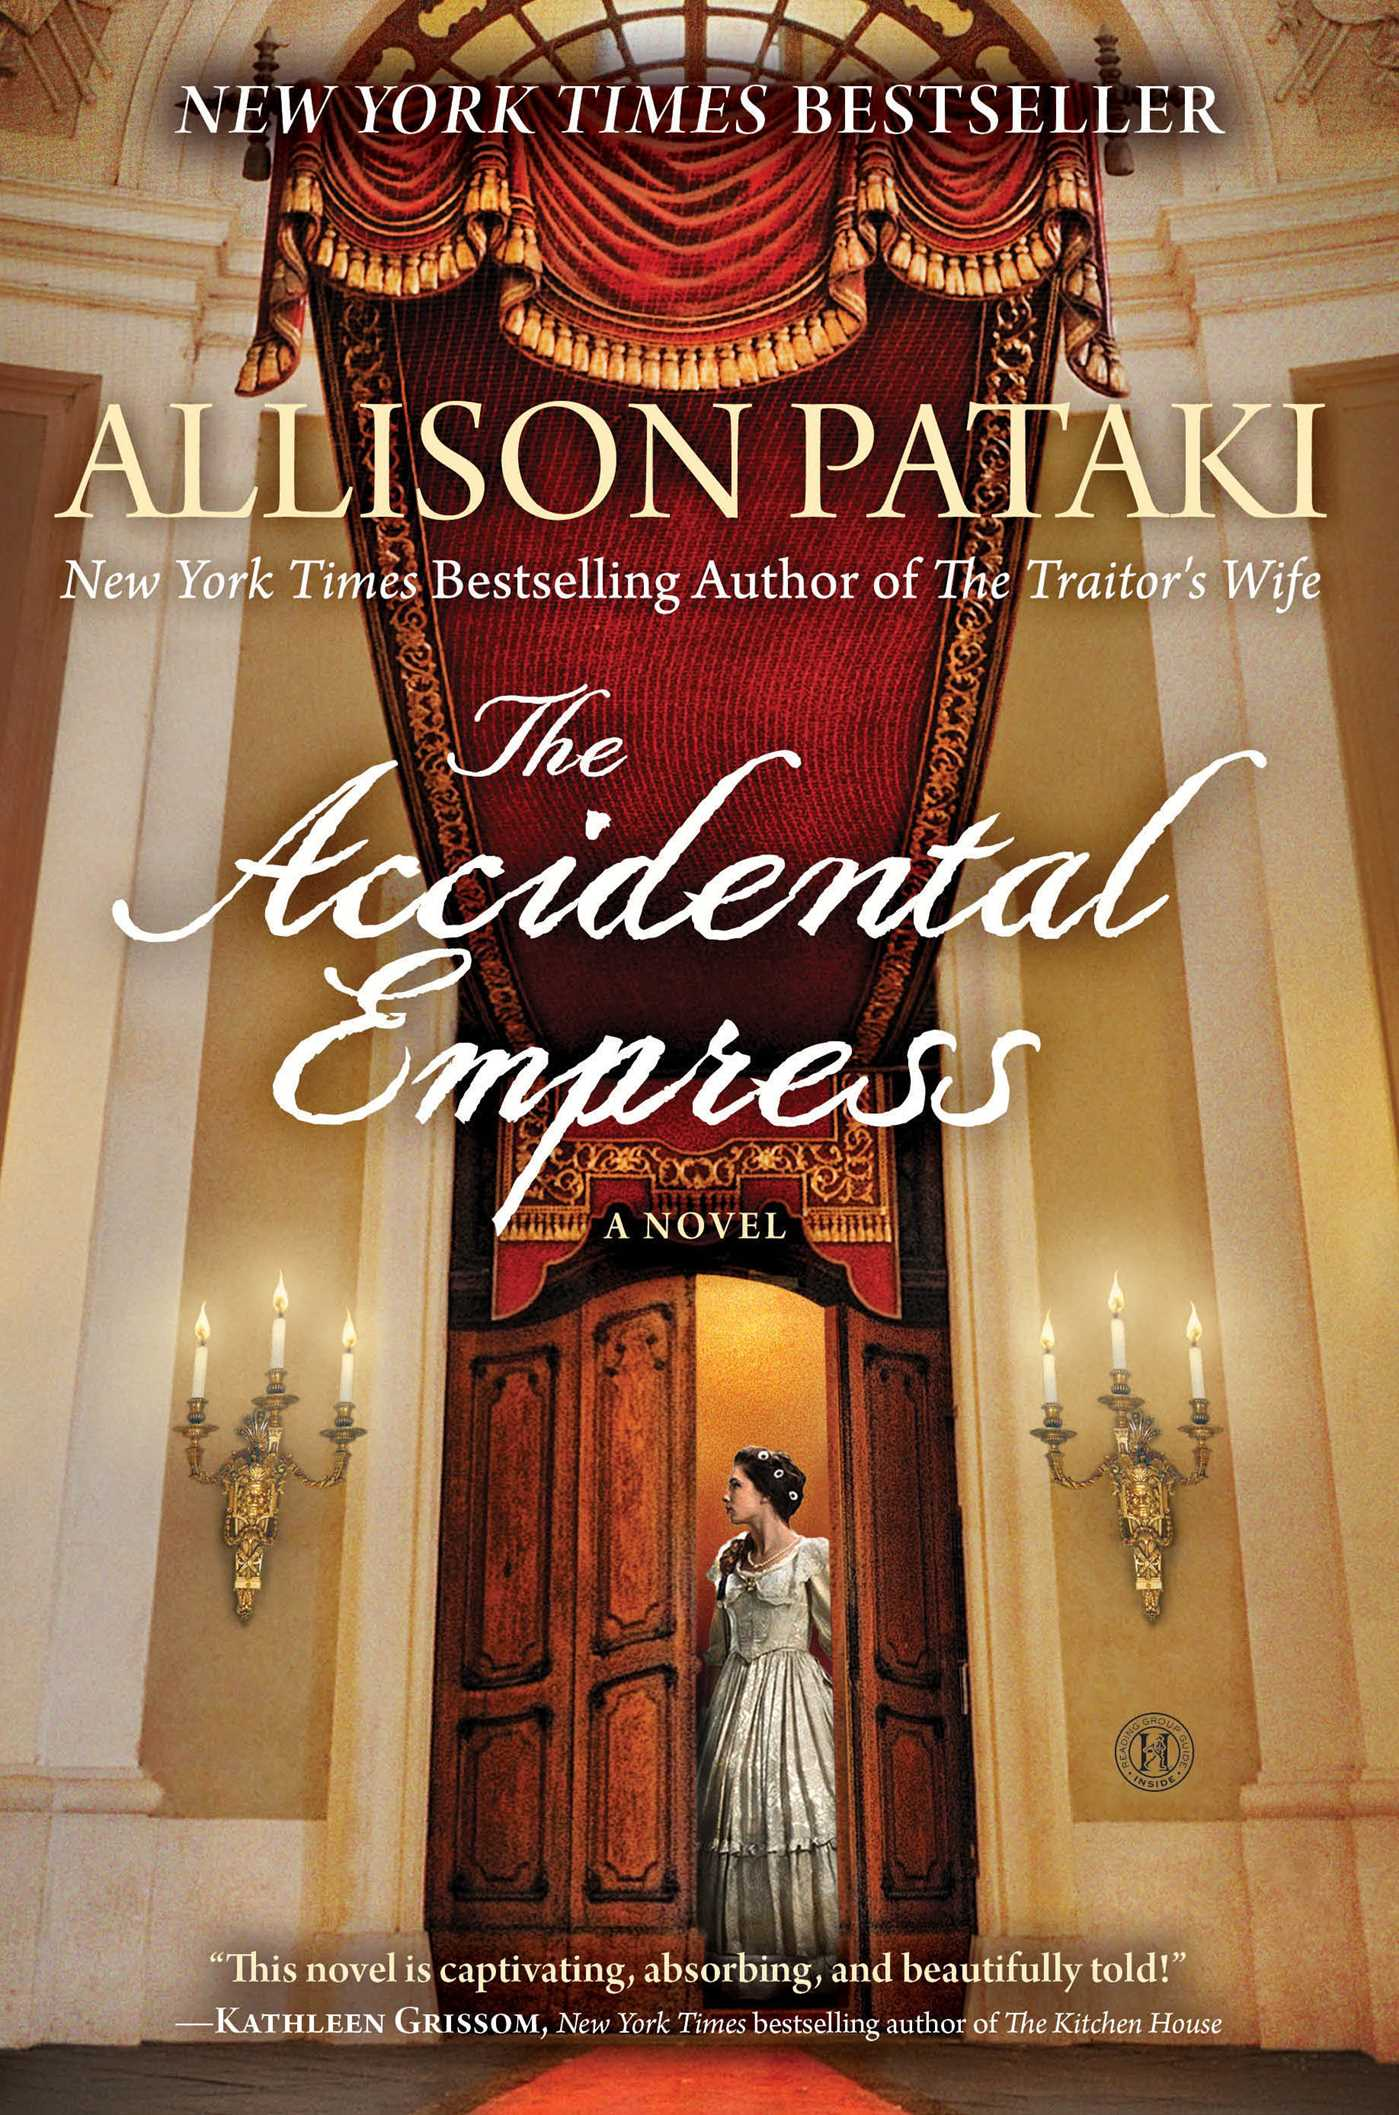 The Accidental Empress  Book By Allison Pataki  Official Publisher Page   Simon & Schuster